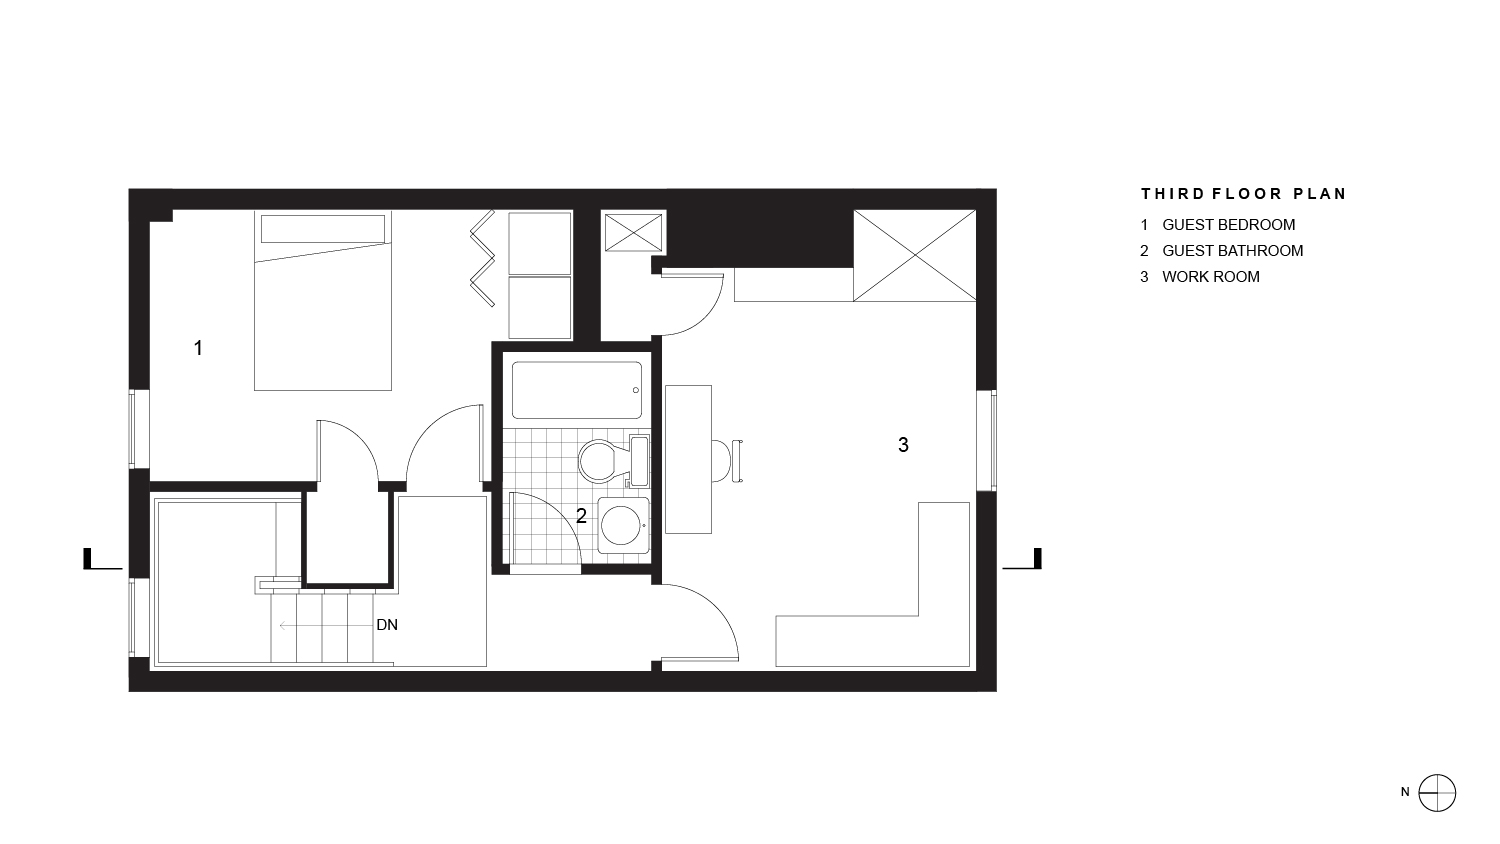 Wright Residence Third Floor Plan